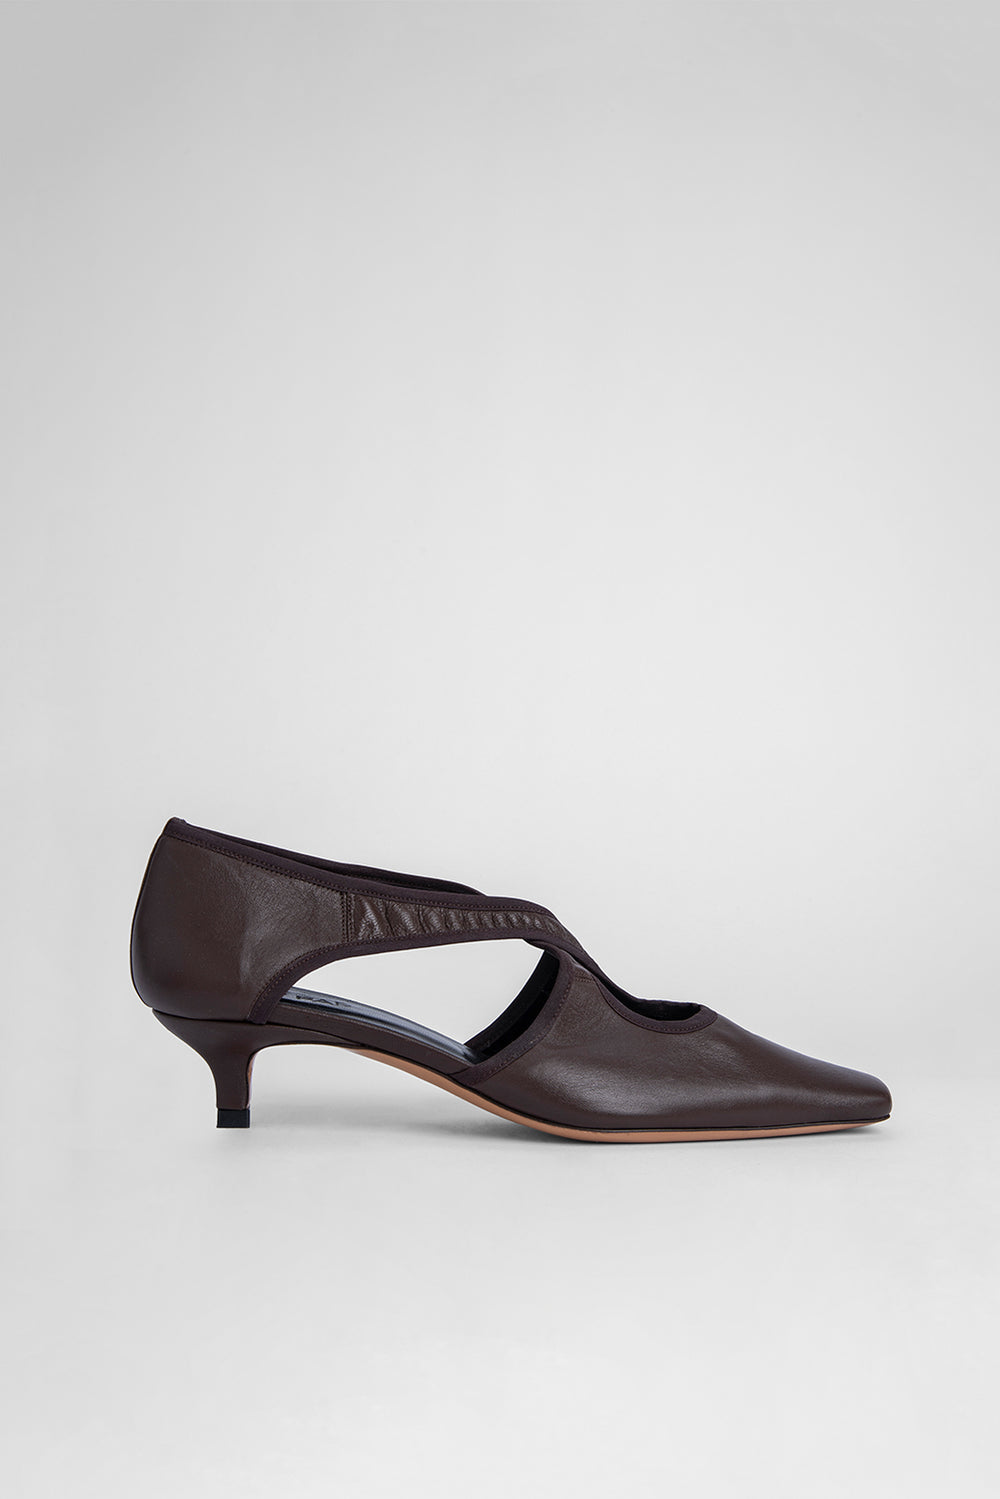 Adele Brown Stretch Leather